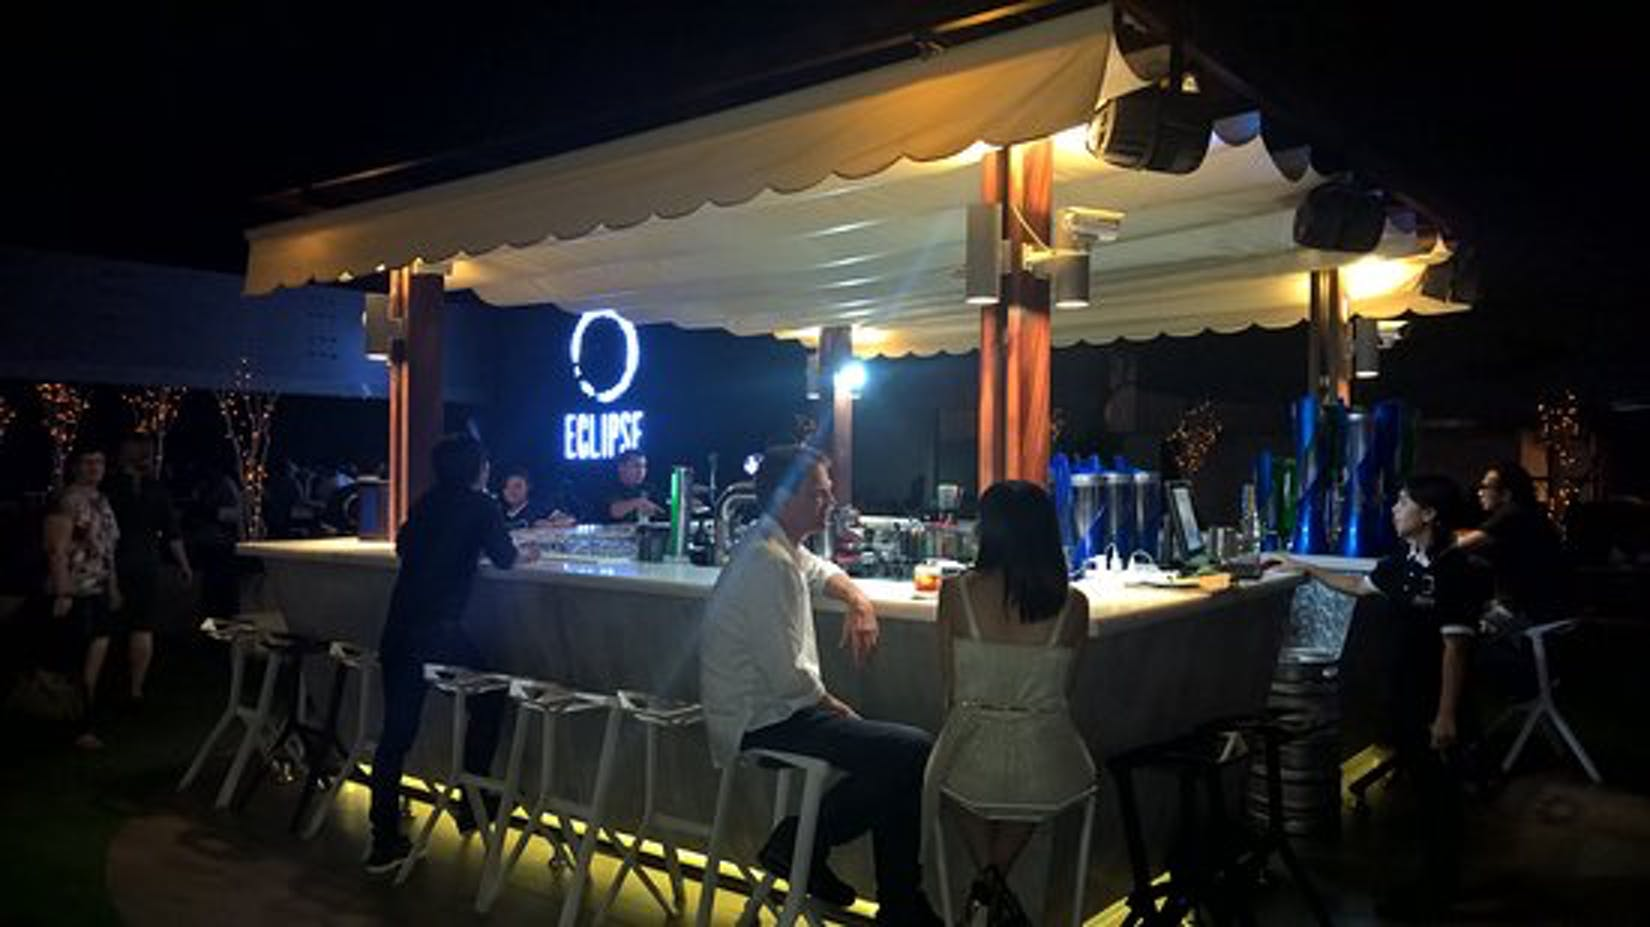 Eclipse Bar & Restaurant | yathar